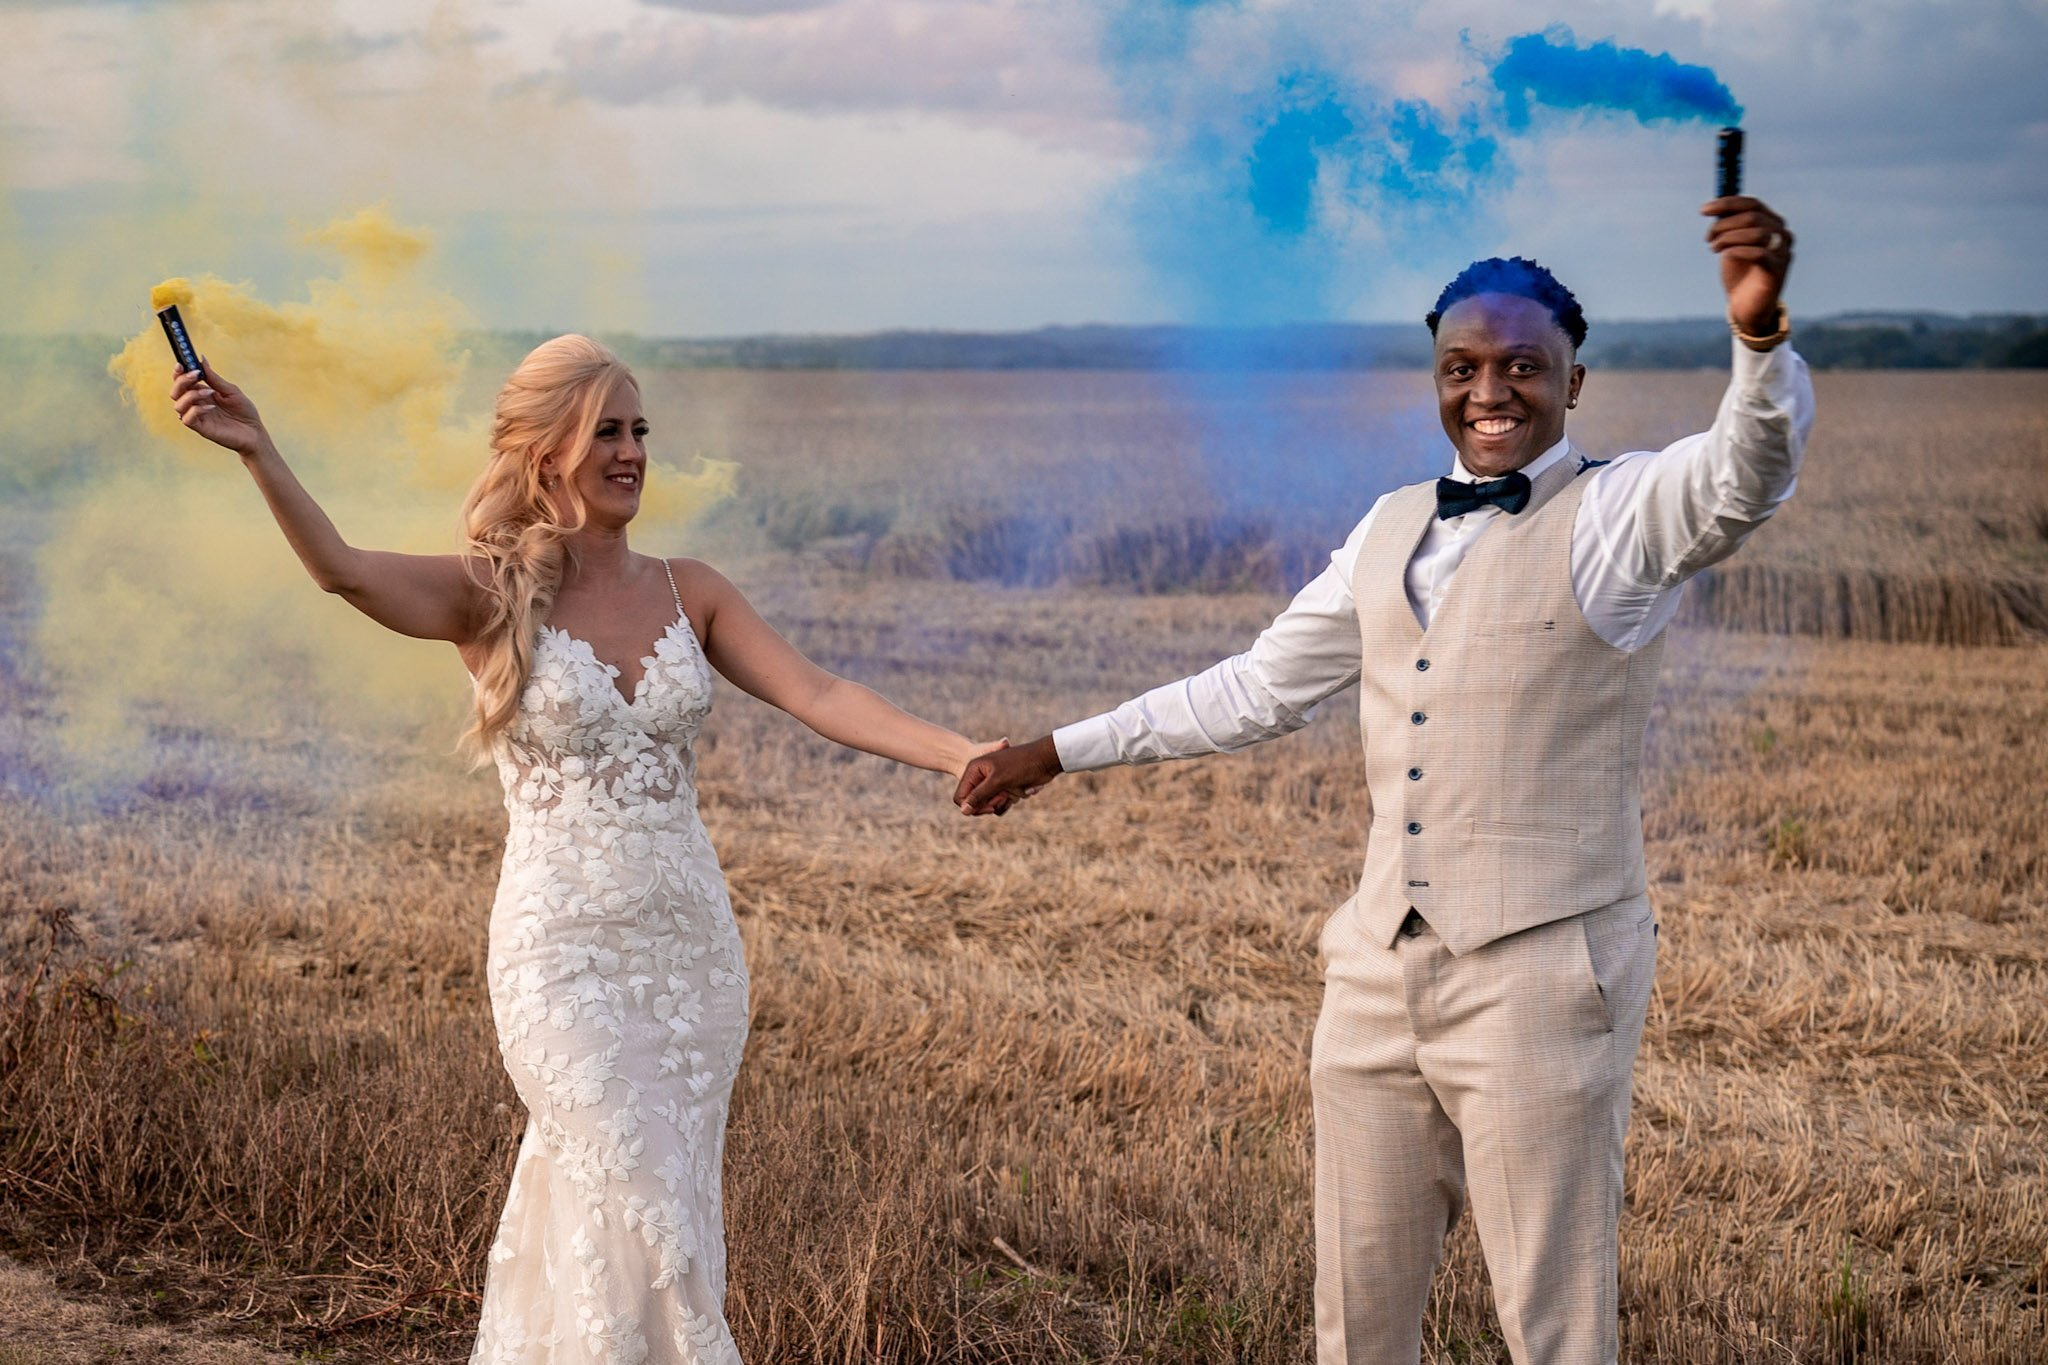 Your Favourite Frame YFFUK Mwasuku Norton Fields Atherstone sunset in front of the wheat fields blue skies groom and bride leaning close yellow and blue smoke effects